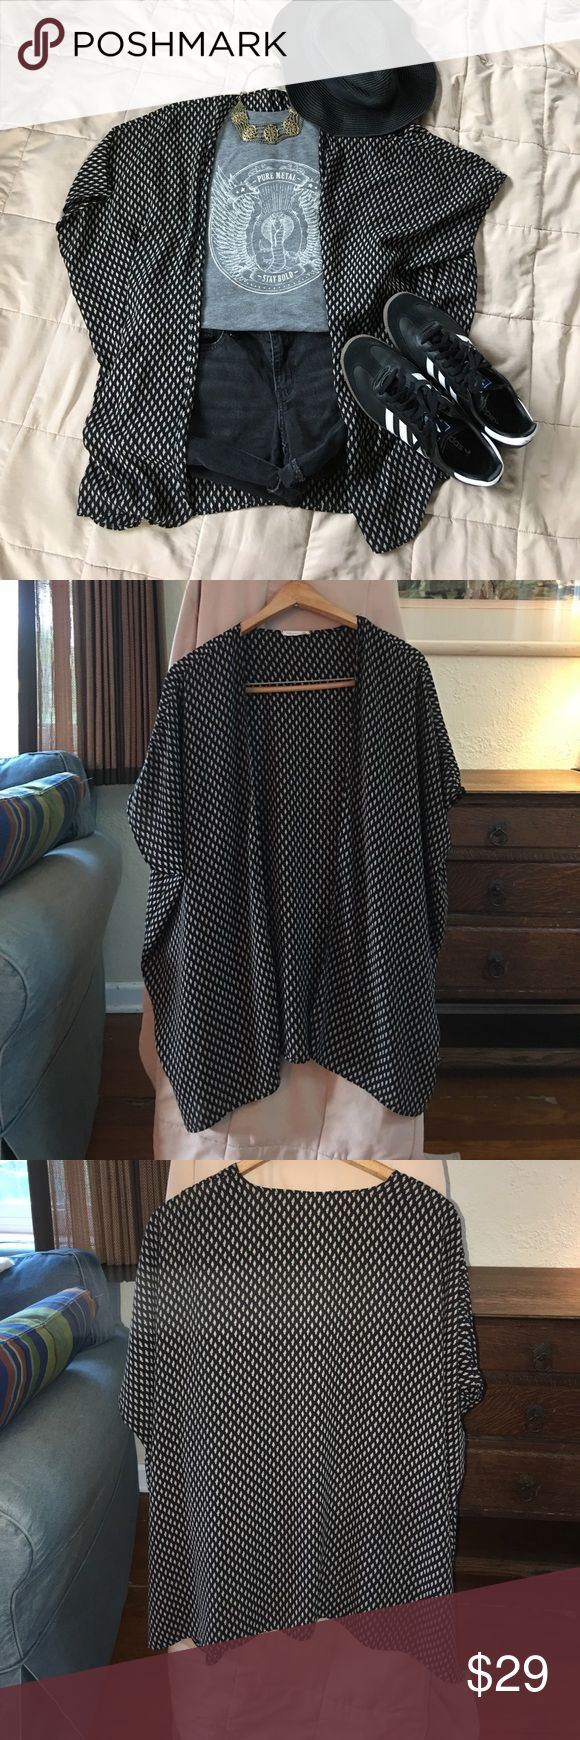 Nordstroms SOPRANO Kimono This Boho SOPRANO Kimono from Nordstroms is in EXCELLENT CONDITION! No flaws! Size Medium. Fits up to a XXL. Please check out my closet!👗👙👠  TAGS: Forever 21, Top Shop, H&M, Free People, Brandy Melville, Pacsun, Lucky Brand, Urban Outfitters, Hot Topic, Dolls Kill, Nastygal, Anthropologie, Madewell, Zara, Mod cloth, Betsey Johnson, Gypsy Warrior, Bohemian, Vintage, Boho, Chic Soprano Tops